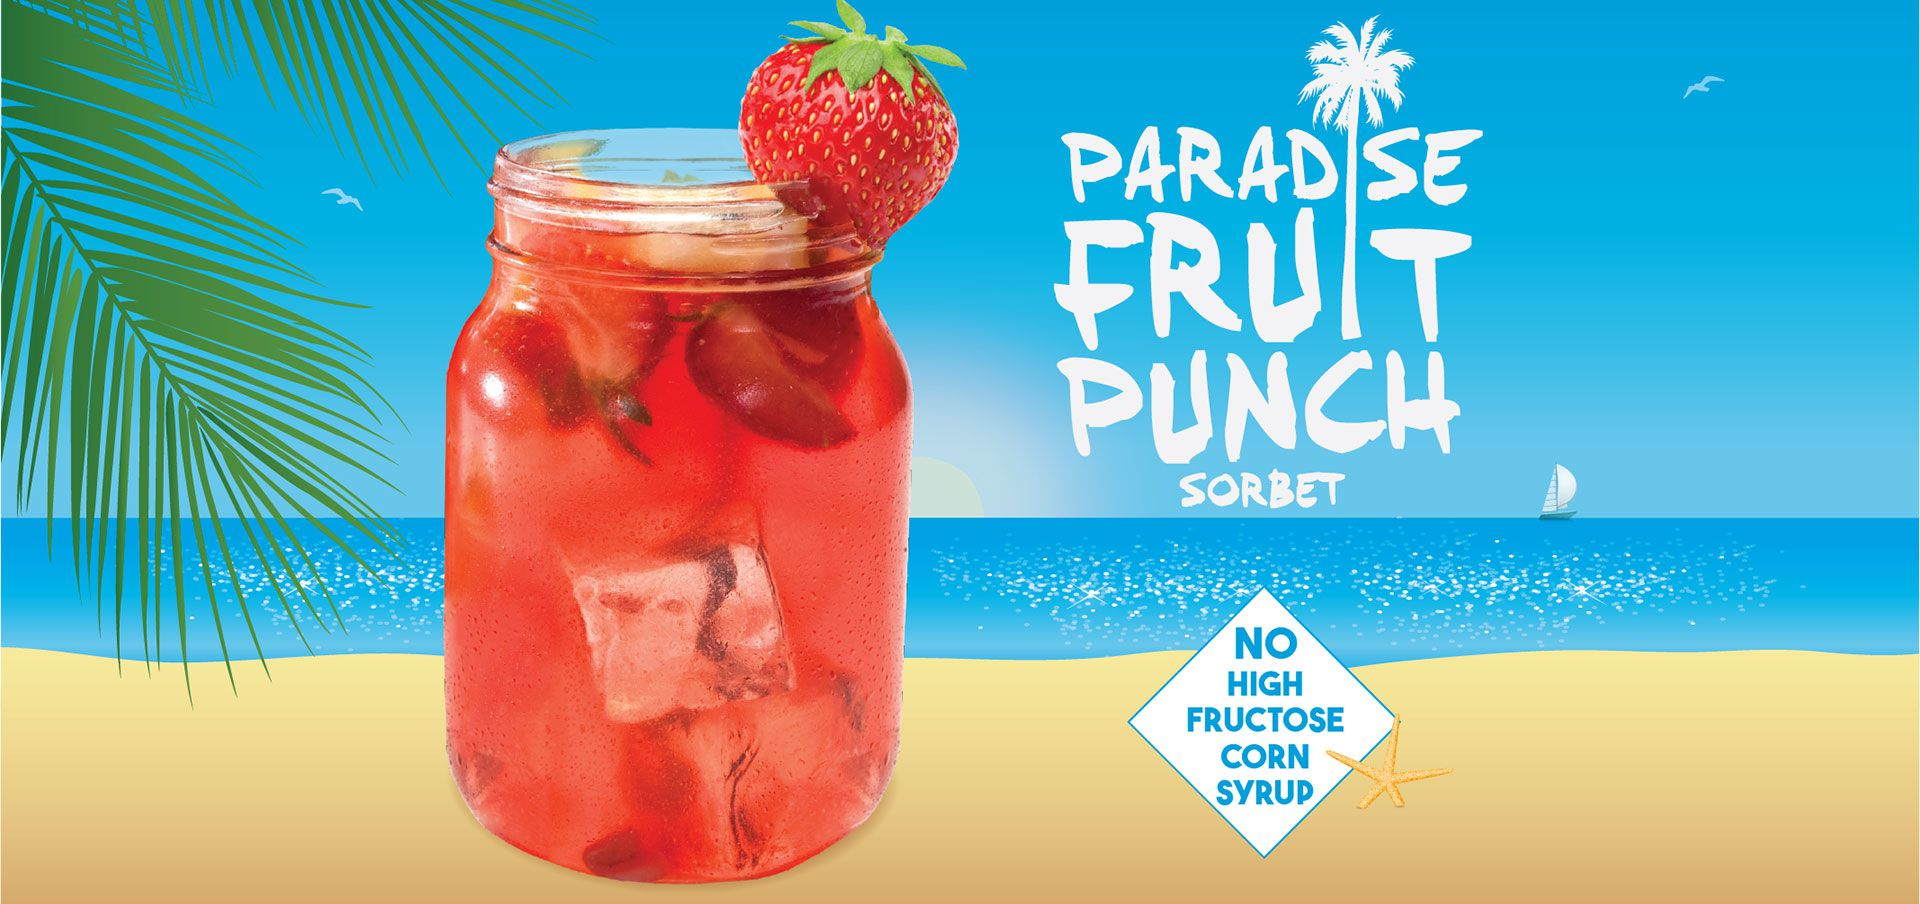 paradise fruit punch sorbet label image